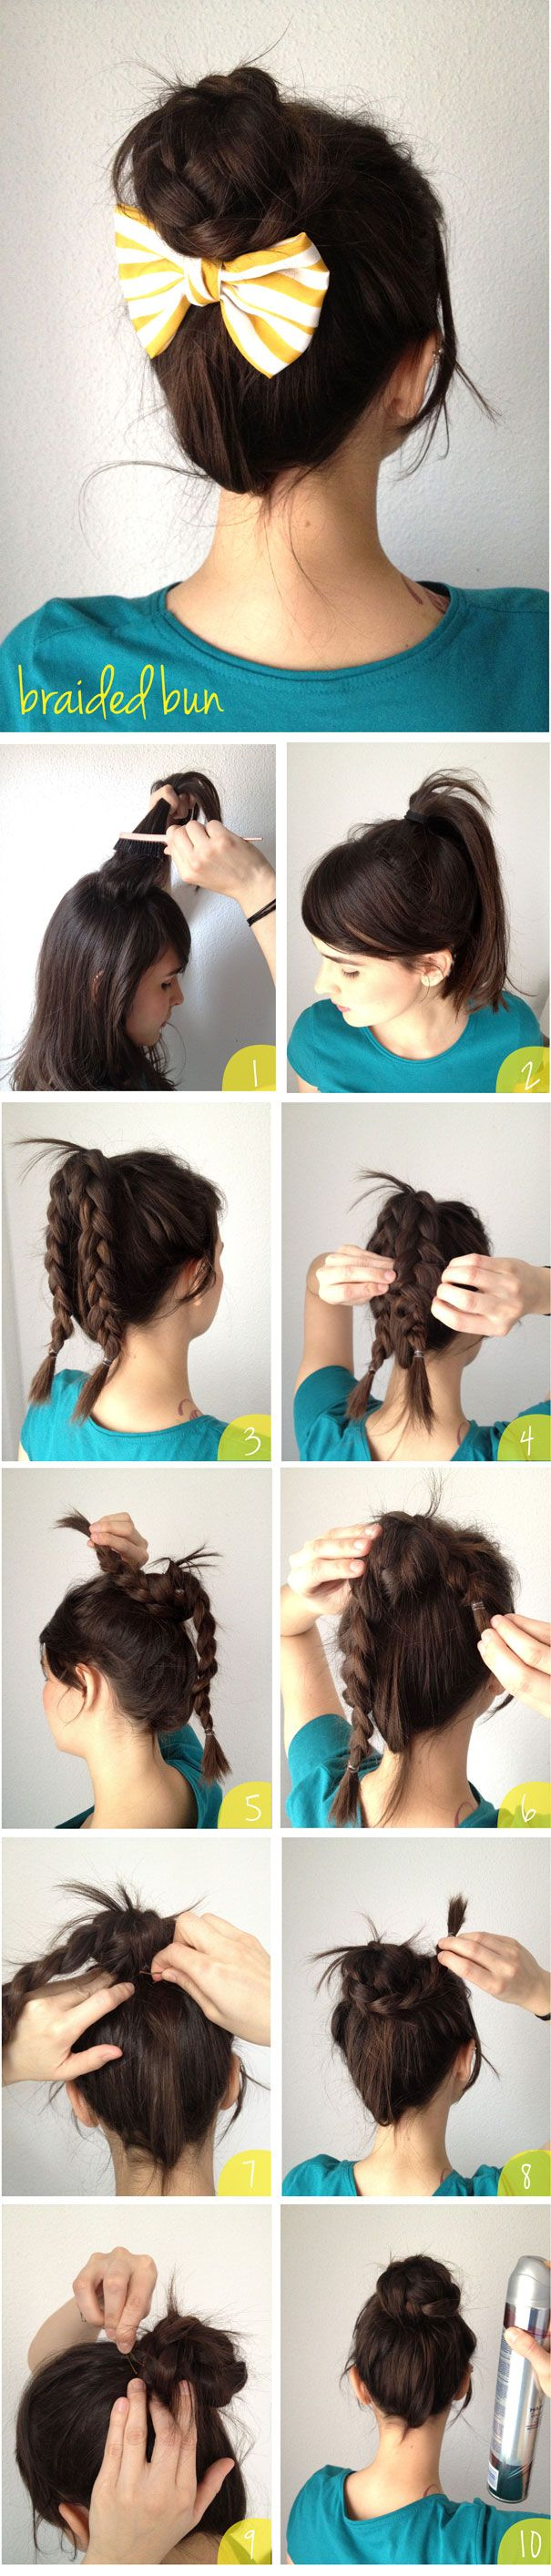 seems simple enough!: Hair Ideas, Hair Tutorials, Buns Hairstyles, Long Hair, Hairstyles Tutorials, Messy Buns, Hair Style, Hair Buns, Braids Buns